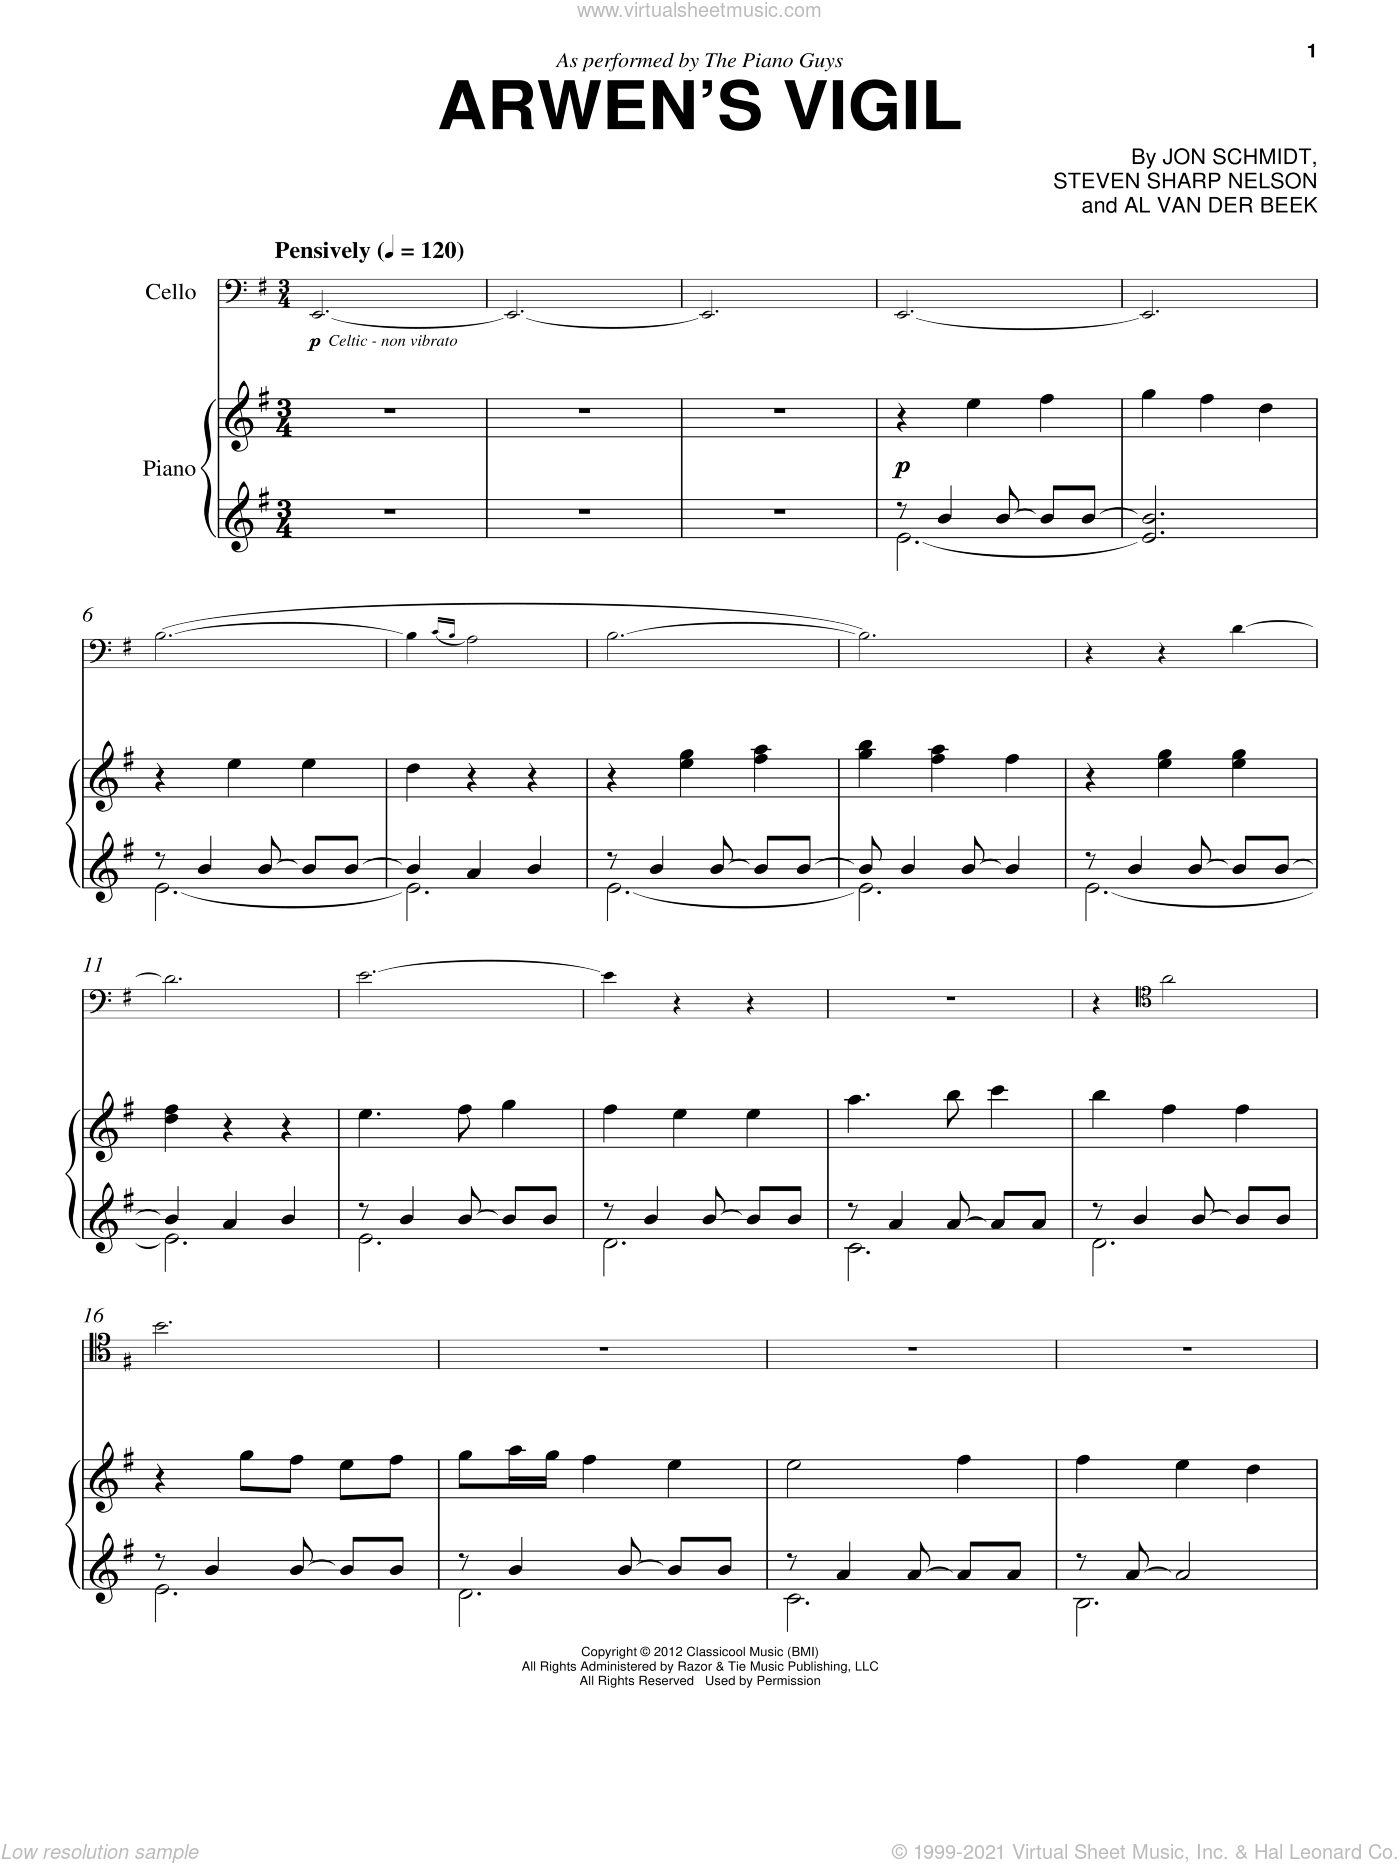 Arwen's Vigil sheet music for cello and piano by The Piano Guys, Al van der Beek, Jon Schmidt and Steven Sharp Nelson, classical score, intermediate skill level